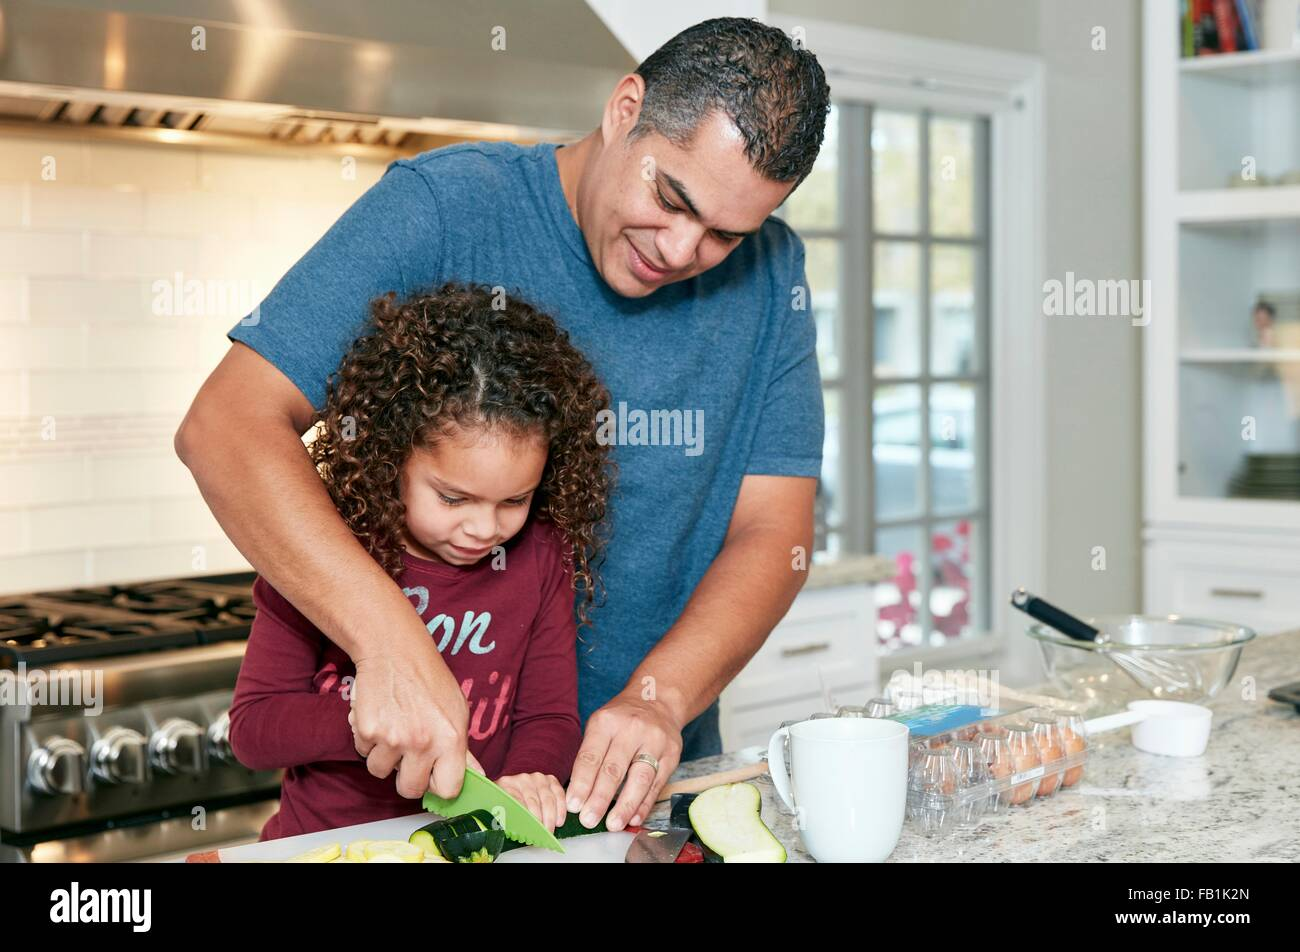 Father helping daughter chop vegetables in kitchen - Stock Image